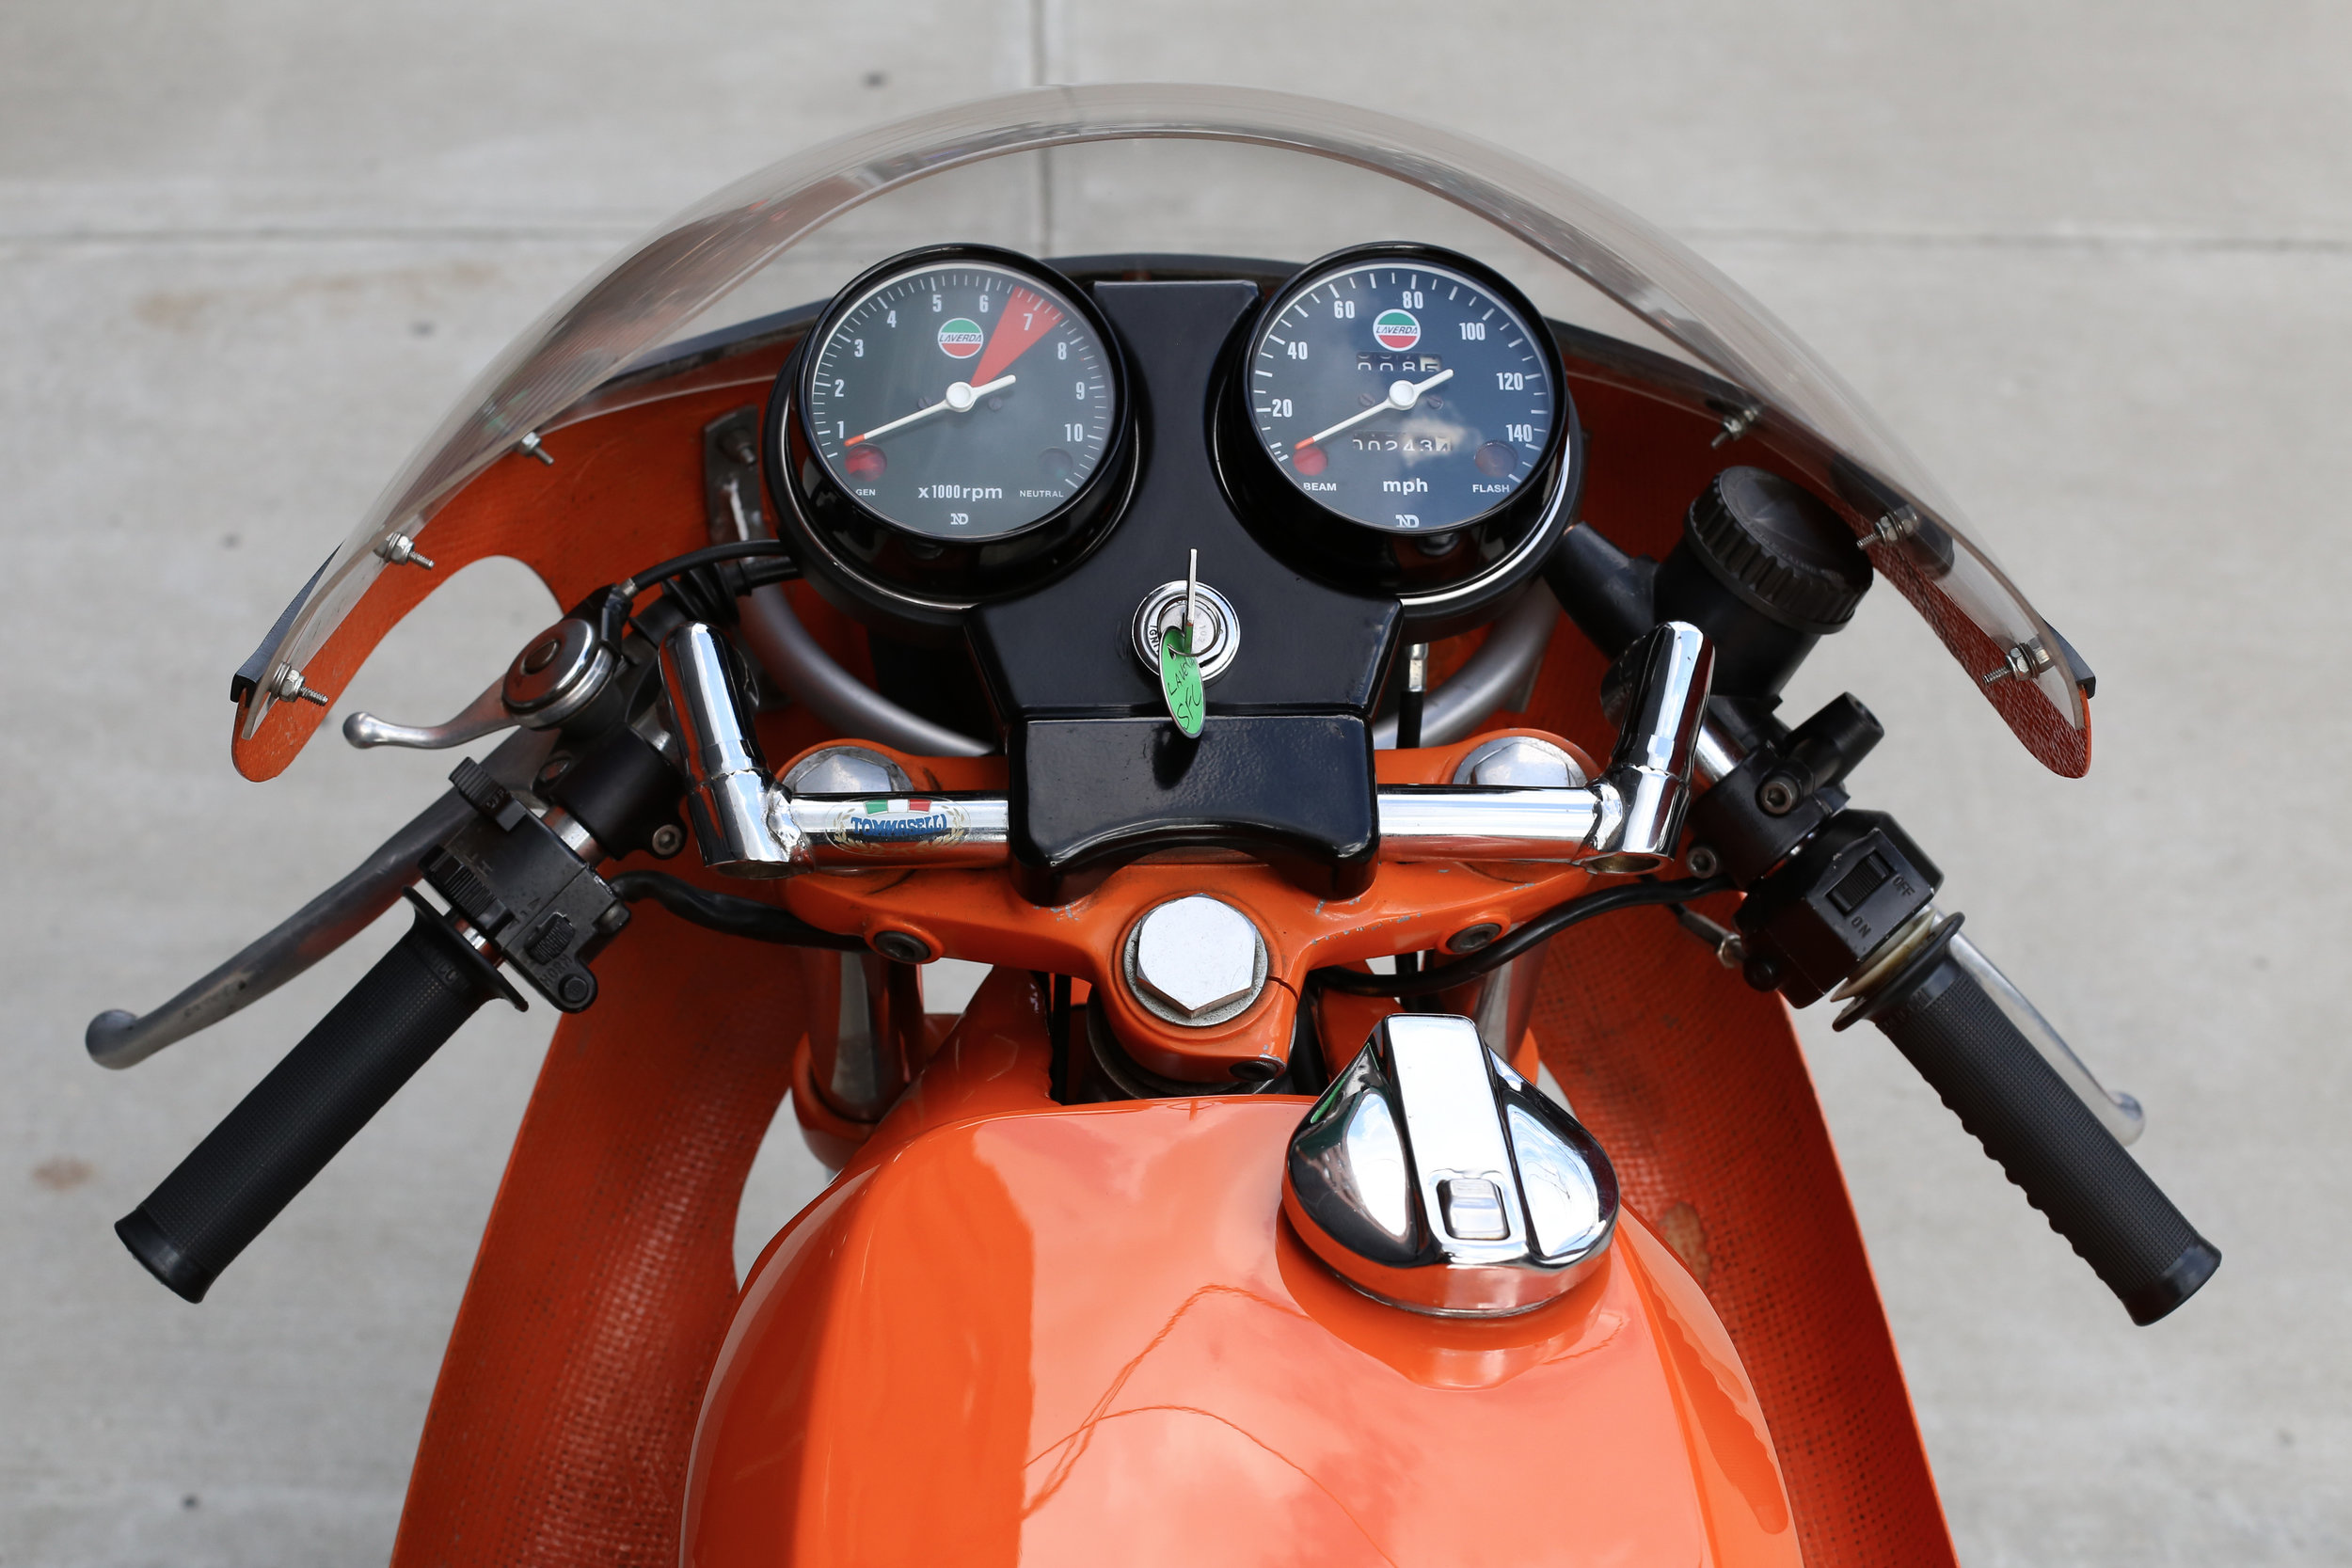 1974 Laverda SFC Gauge